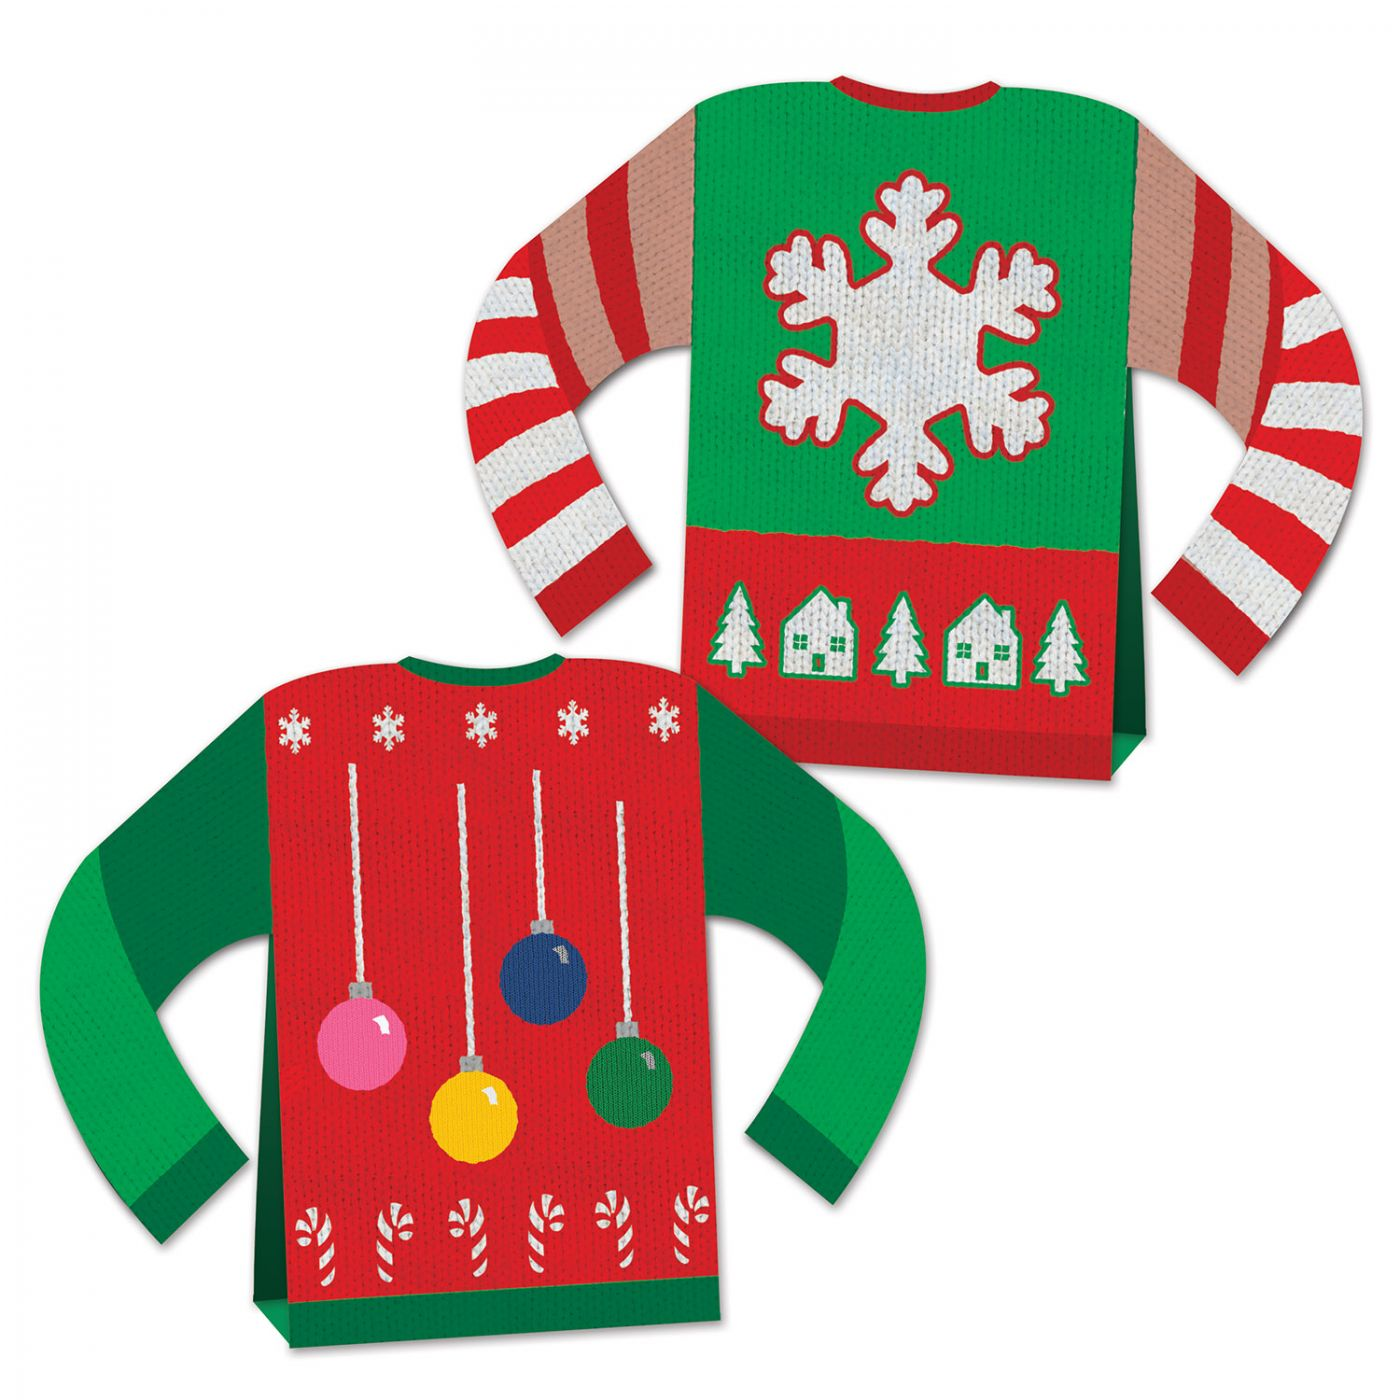 Image of 3-D Ugly Sweater Centerpiece